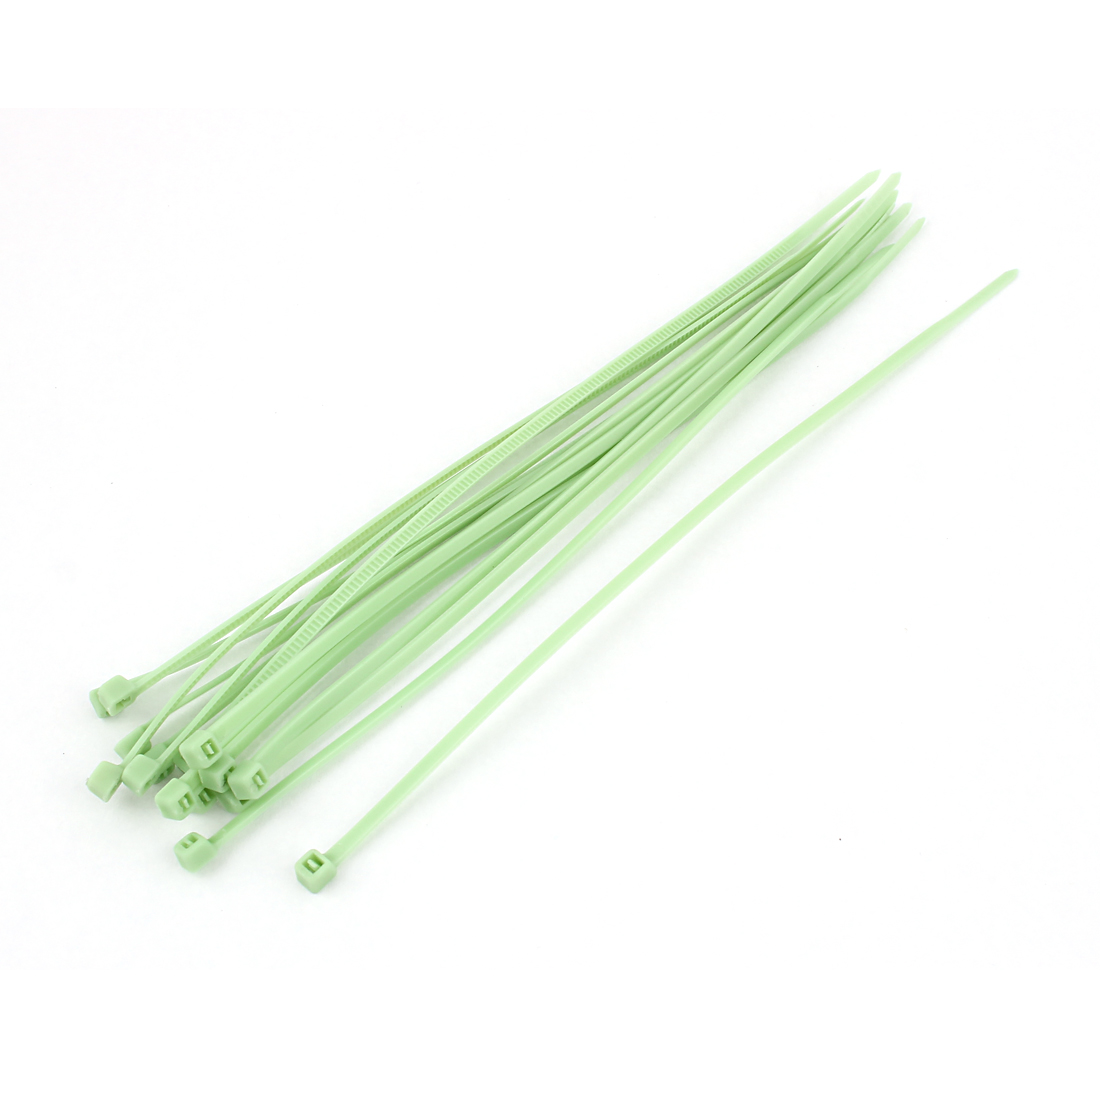 "15pcs 8"" Nylon Self-Locking Network Cable Cord Wire Zip Ties Strap Green"